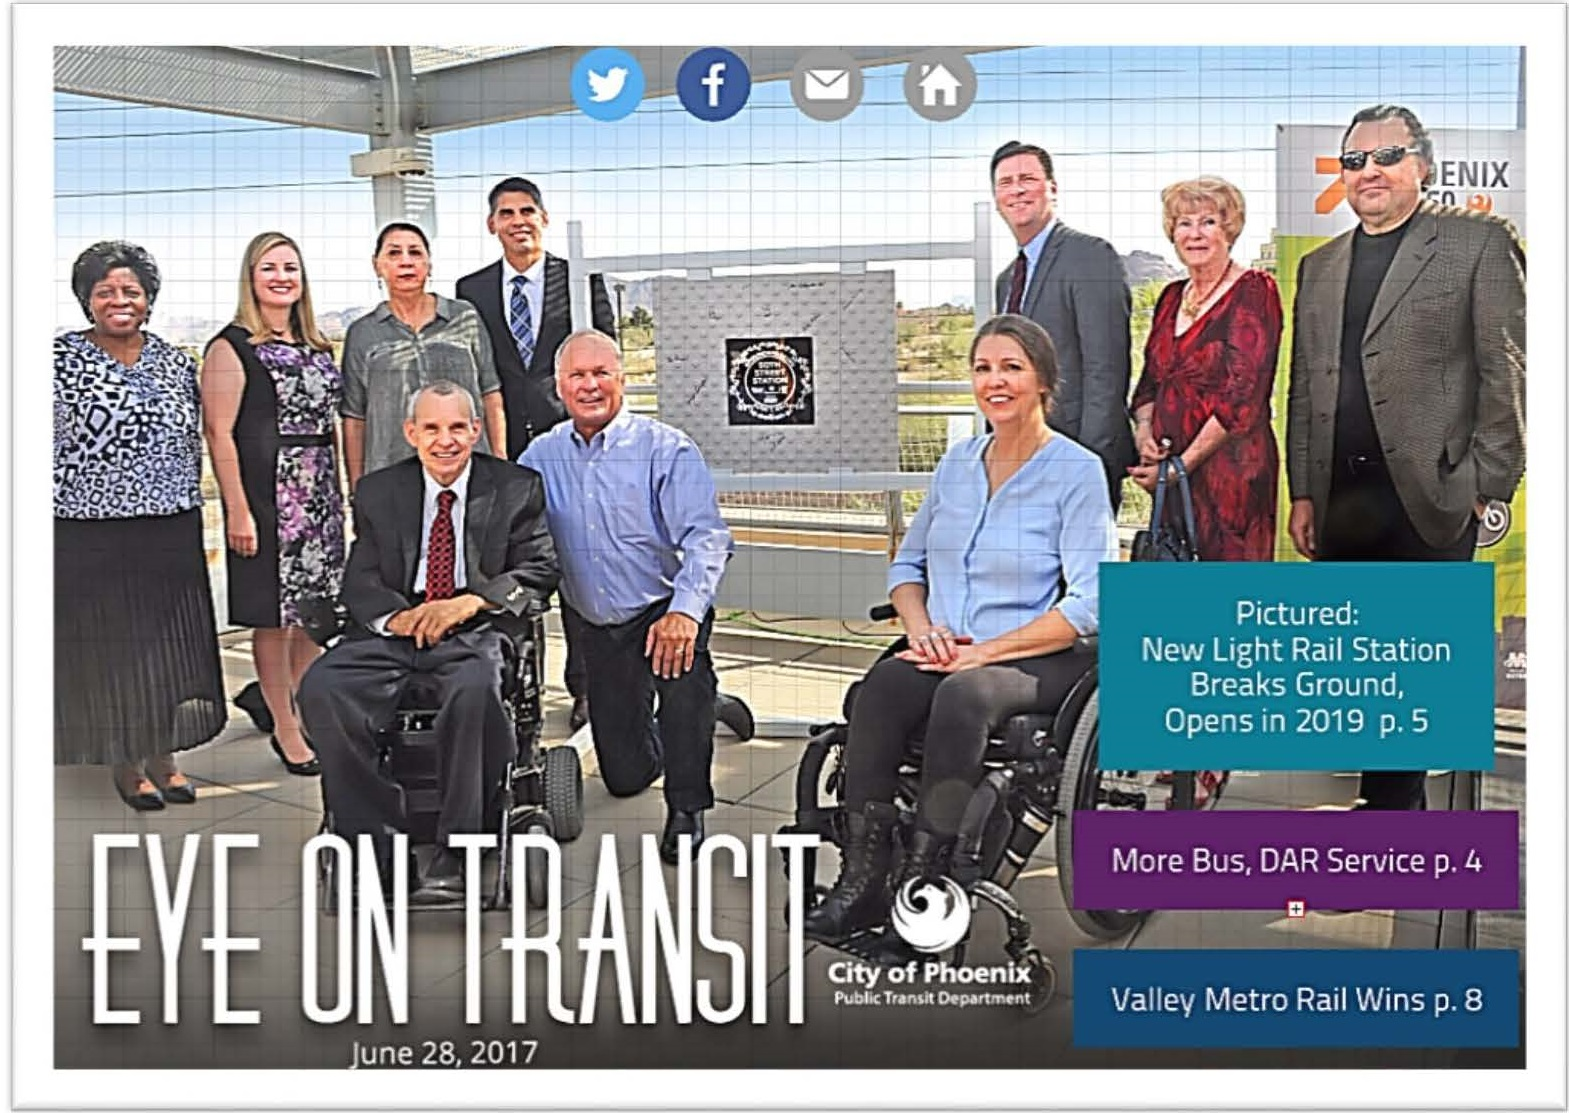 Eye on Transit - group photo